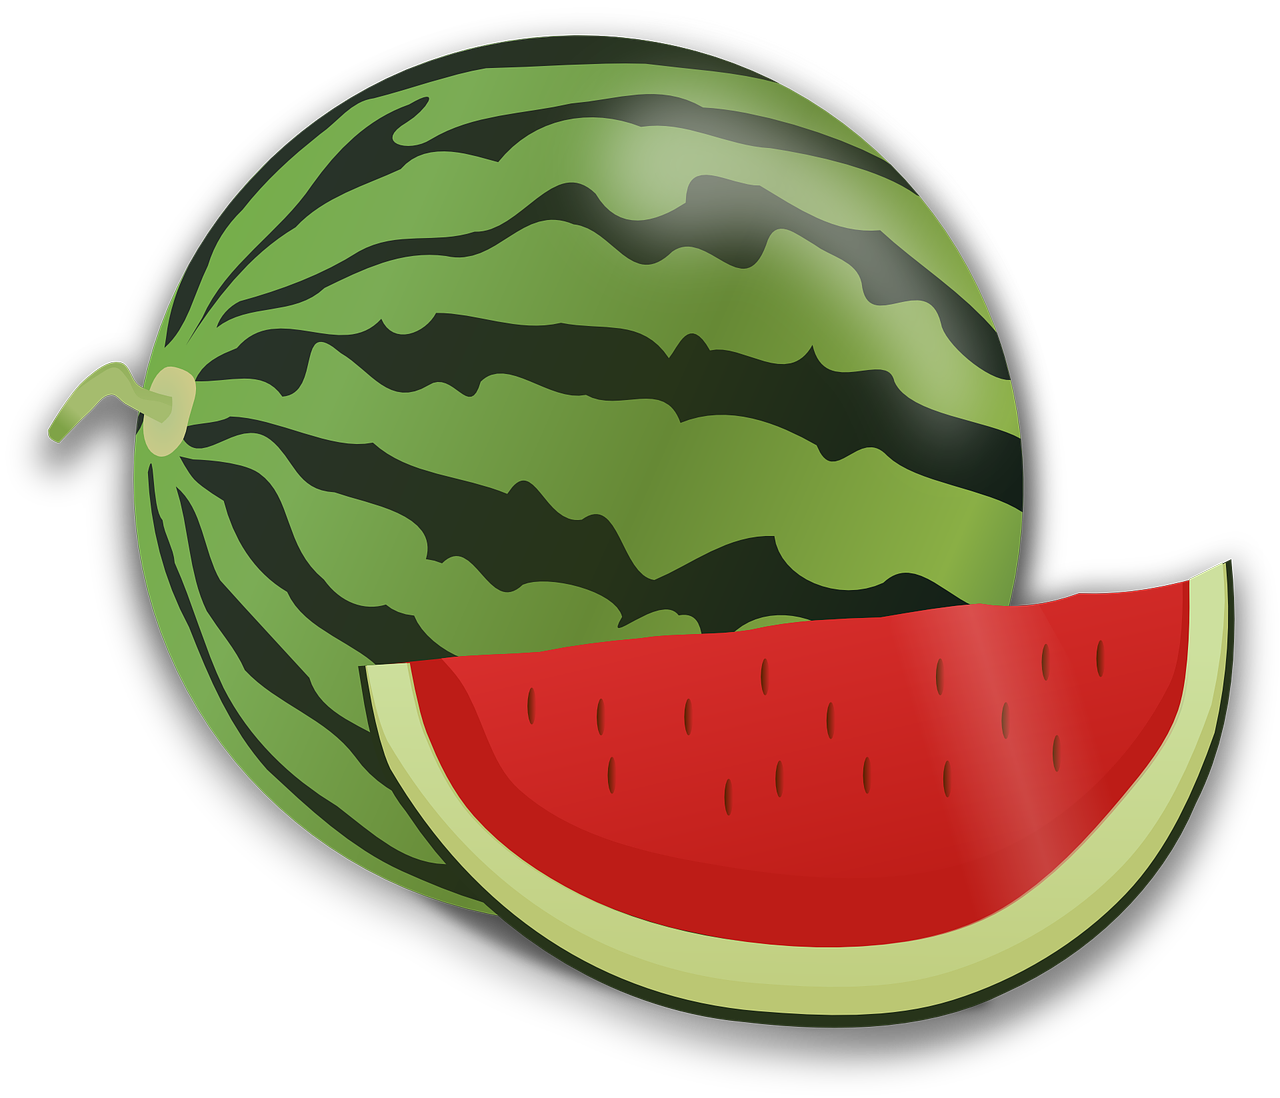 watermelon,fruit,melon,food,sweet,delicious,tasty,cut,slice,seeds,ripe,red,free vector graphics,free pictures, free photos, free images, royalty free, free illustrations, public domain